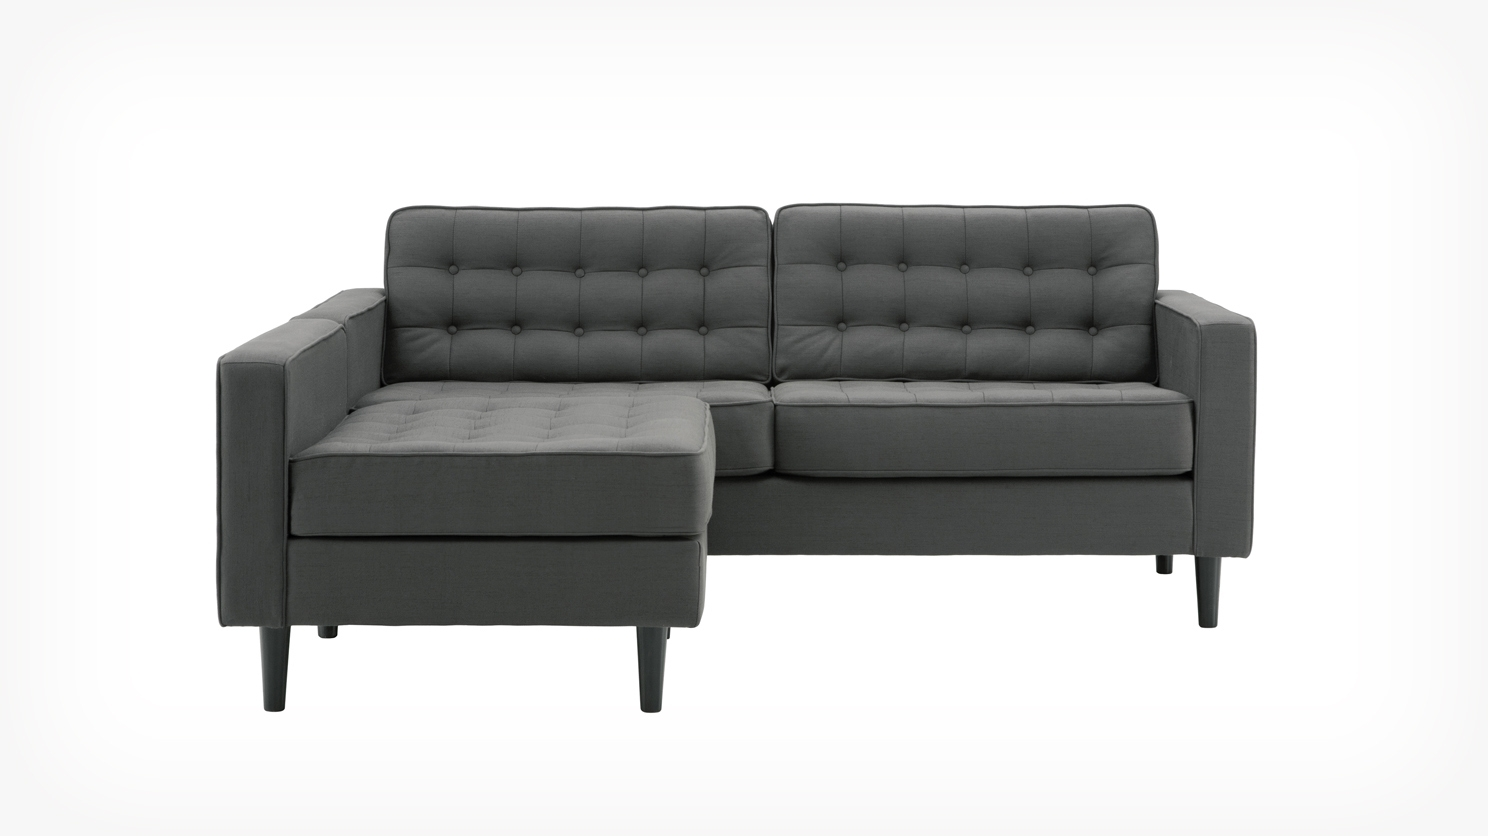 Most Popular Apartment Sectional Sofas With Chaise Intended For Eq (View 15 of 20)